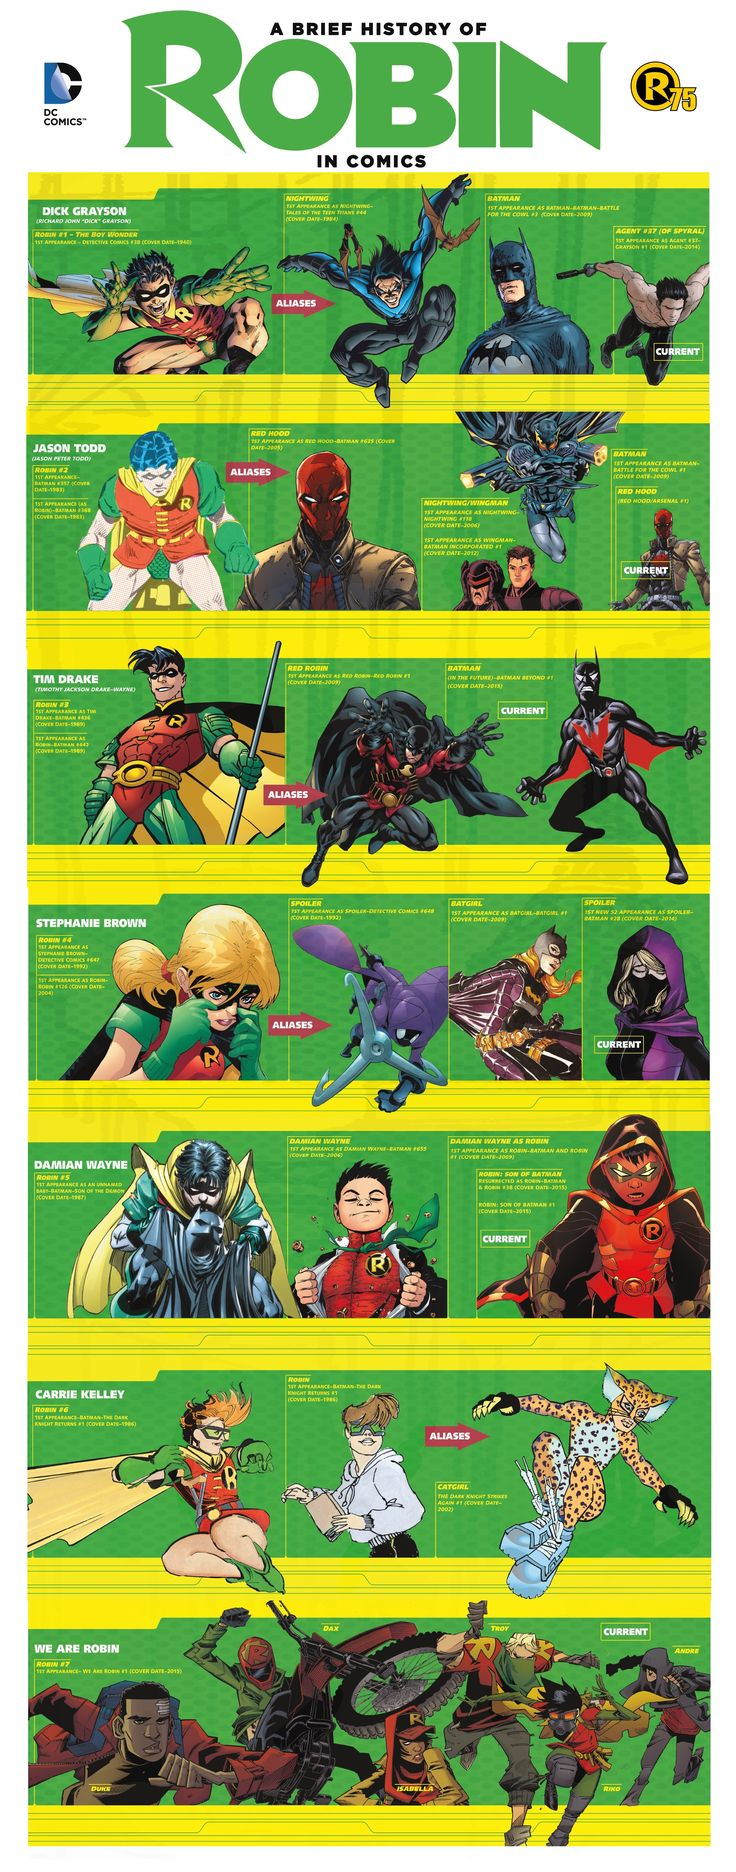 A brief history of the Robins. The only one missing is the fairly obscure Helena Wayne (Bruce and Selina's daughter) of Earth 2.